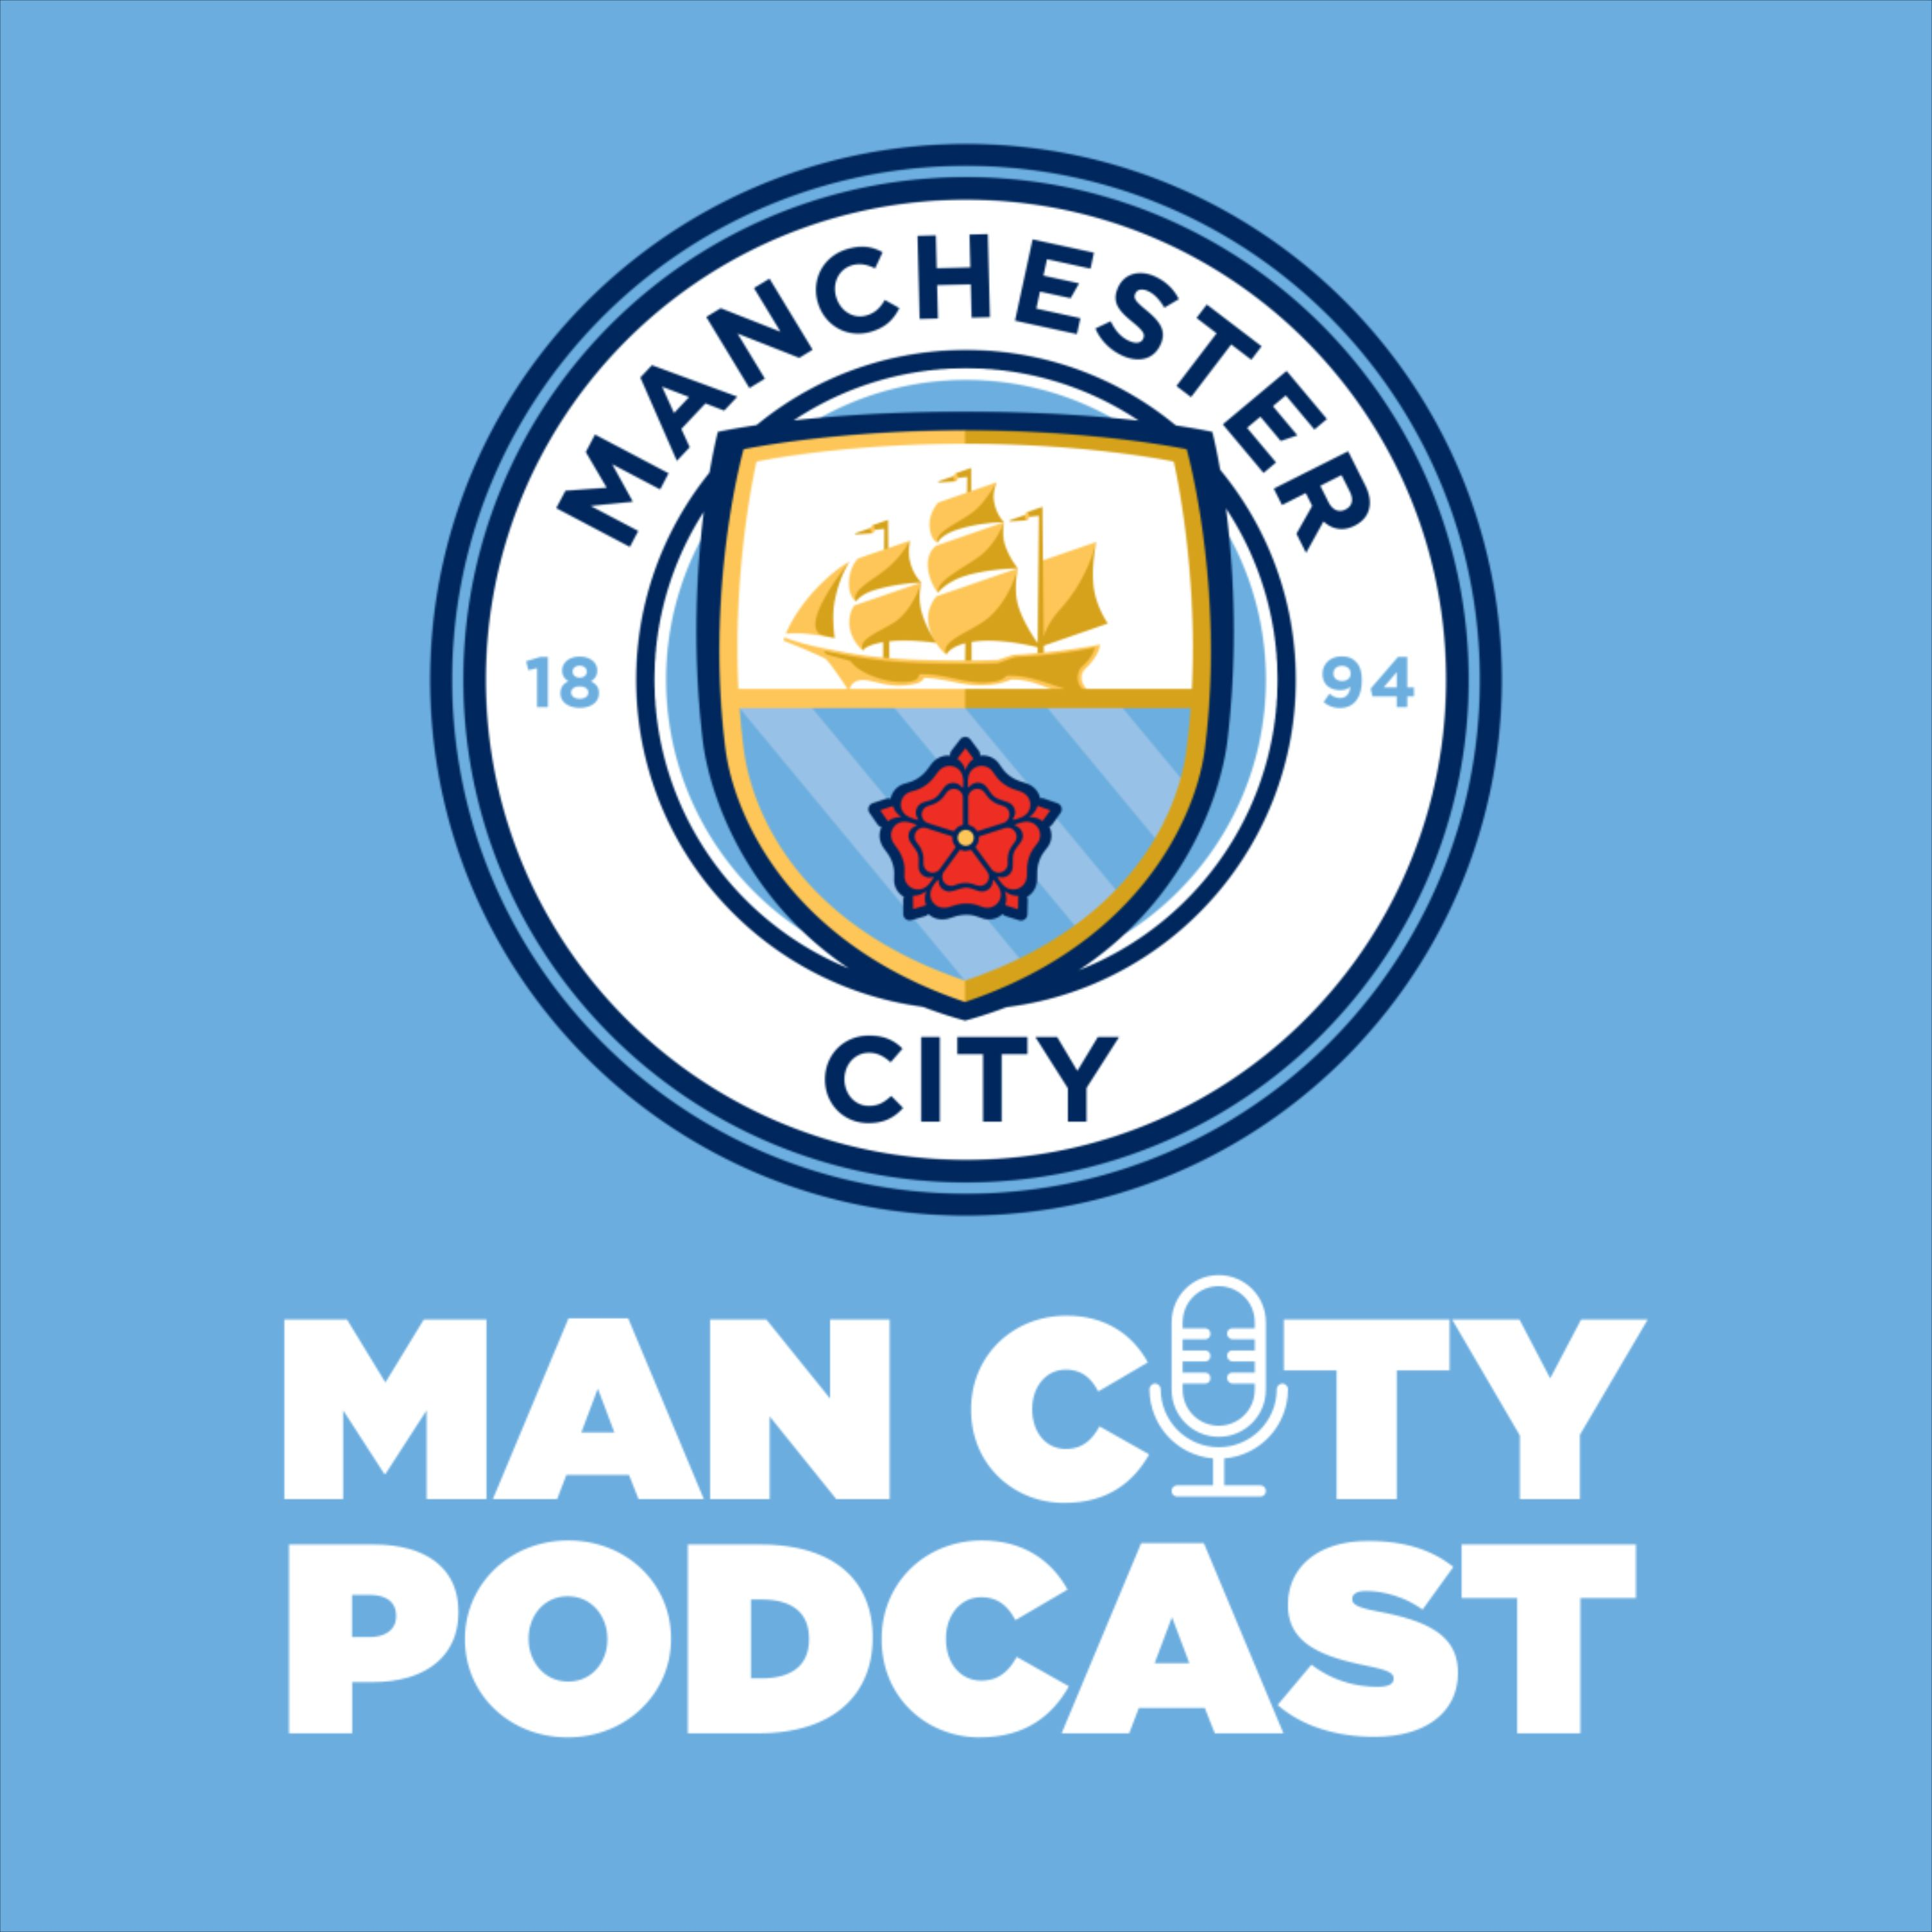 Man City's Official Podcast Trailer